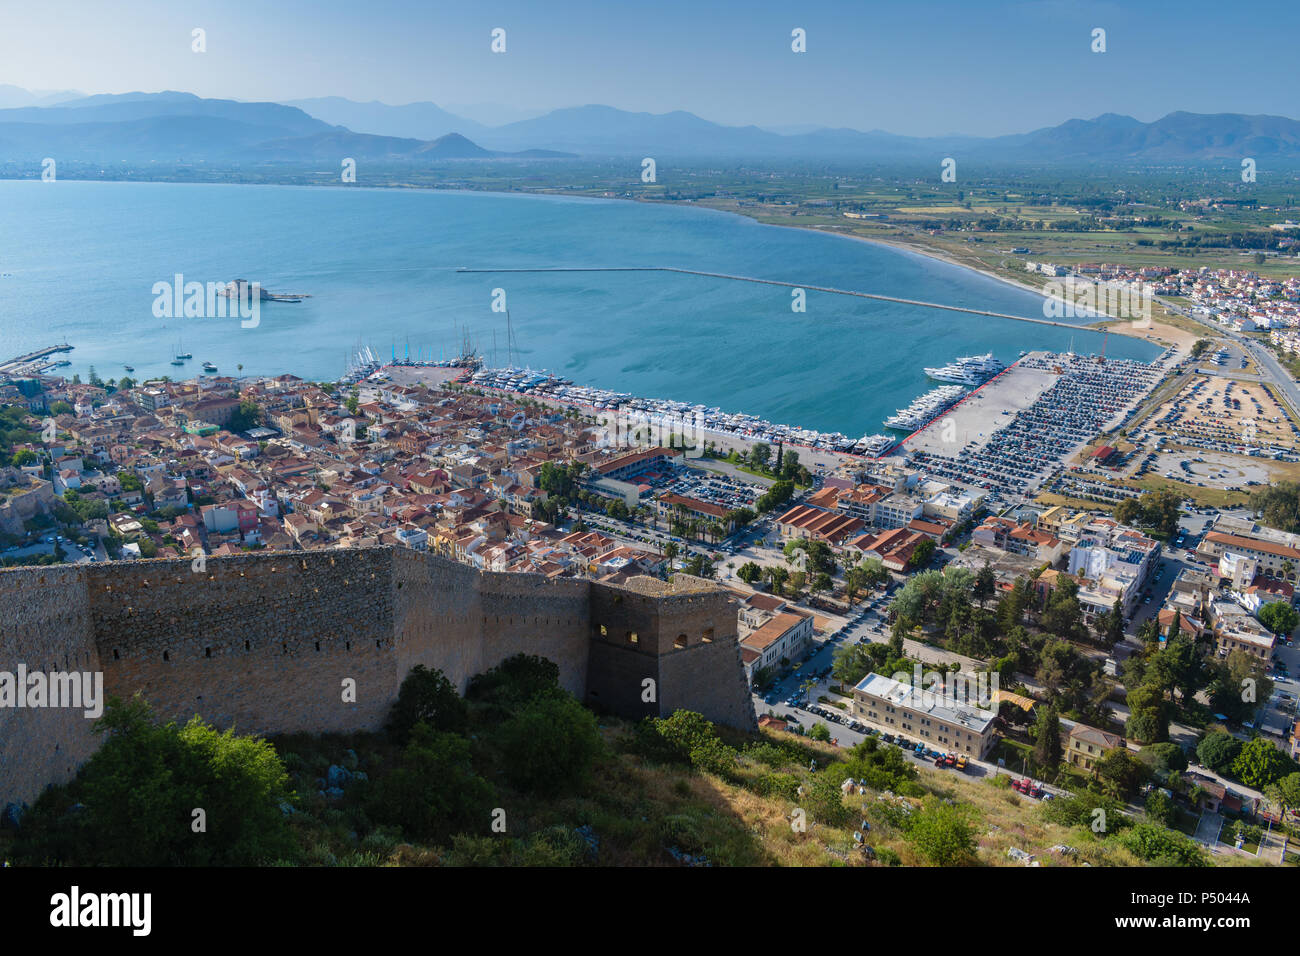 Nafplio city view from Palamidi castle with Bourtzi caslte in the background - Stock Image